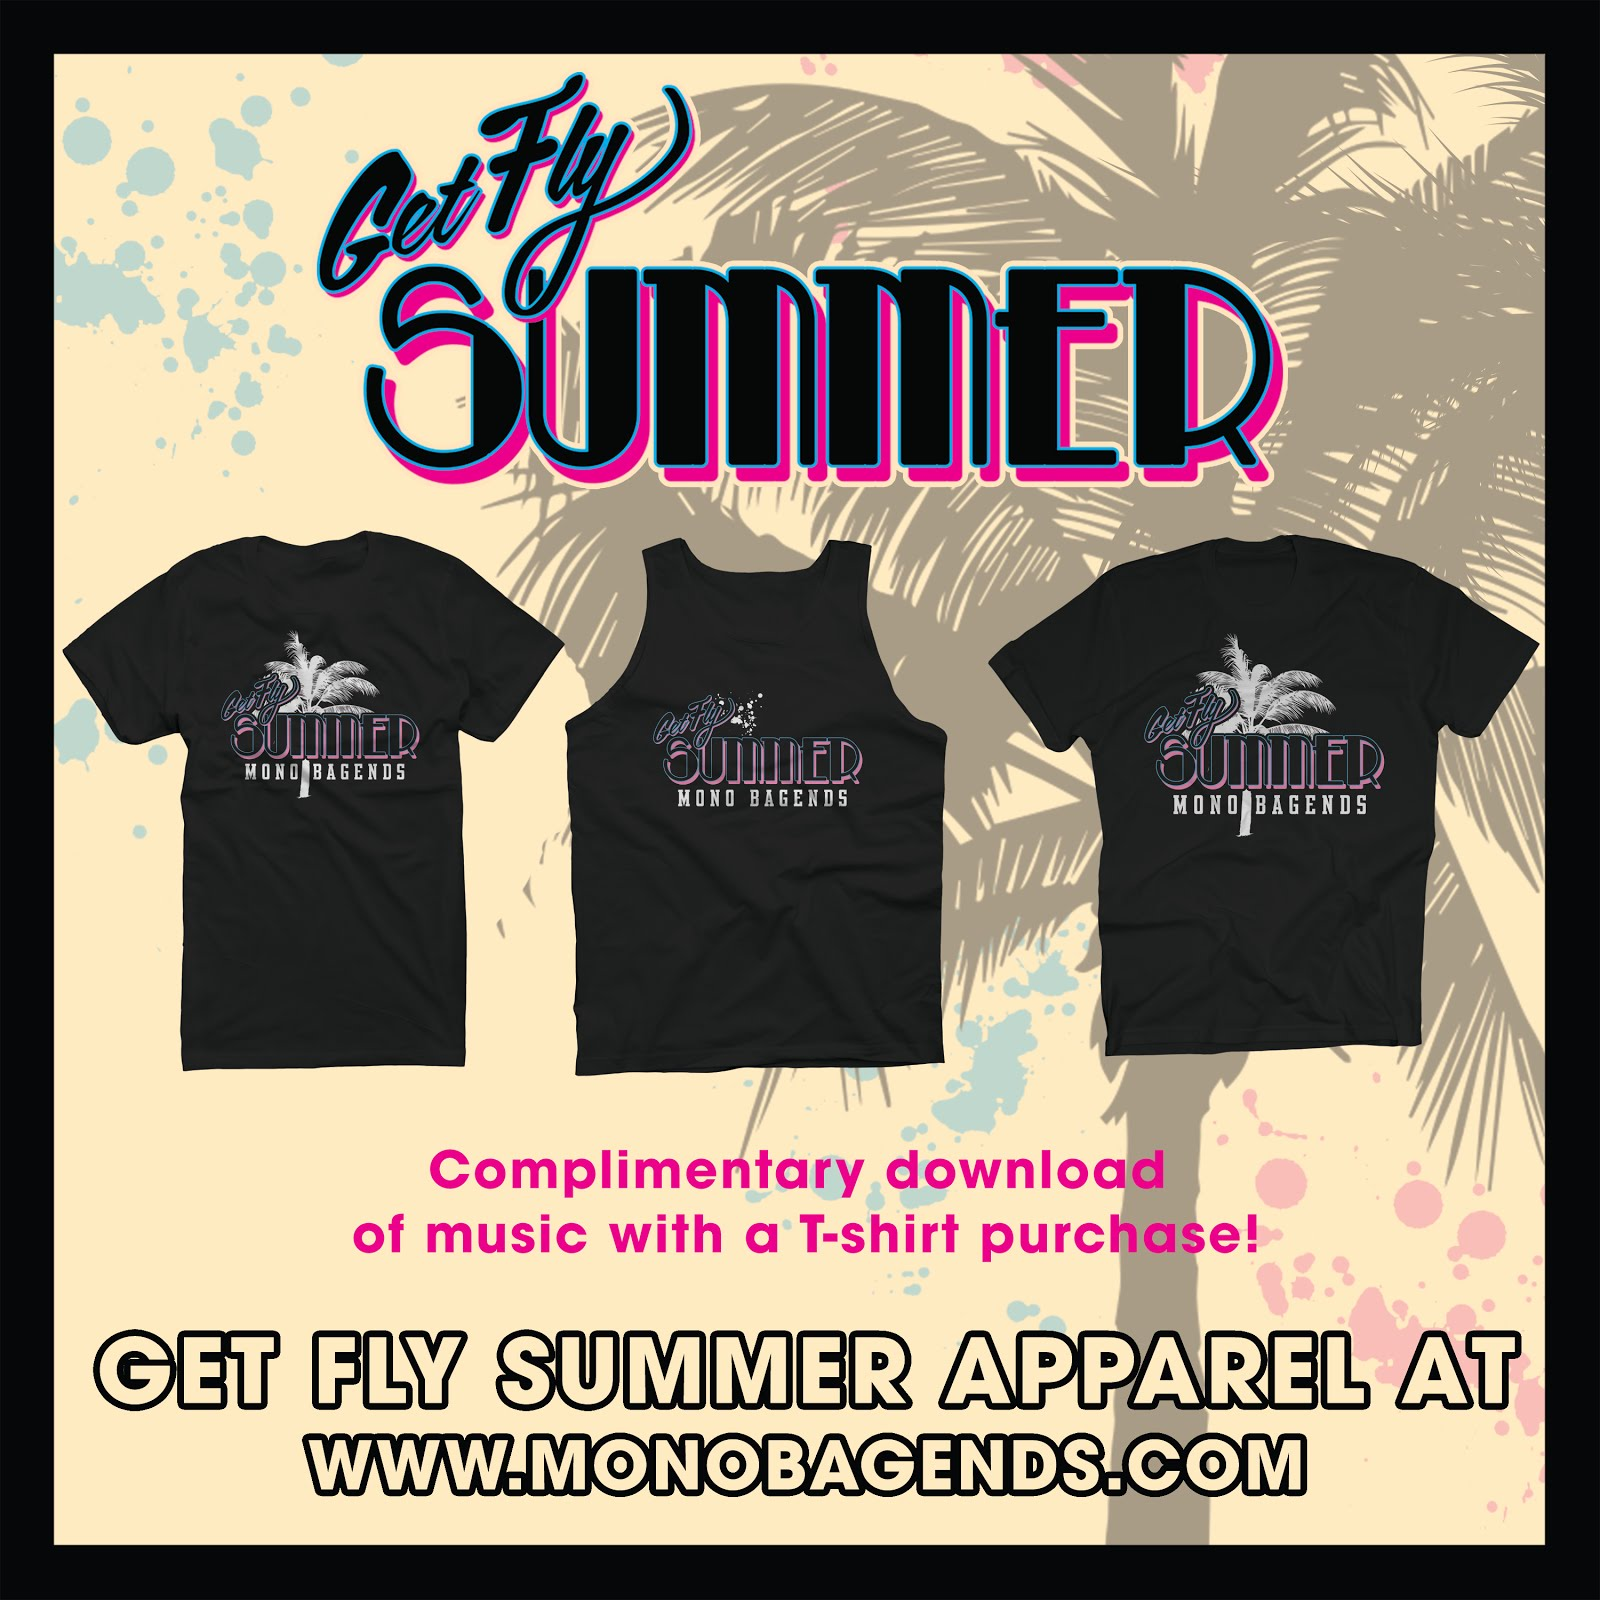 GET FLY SUMMER APPAREL